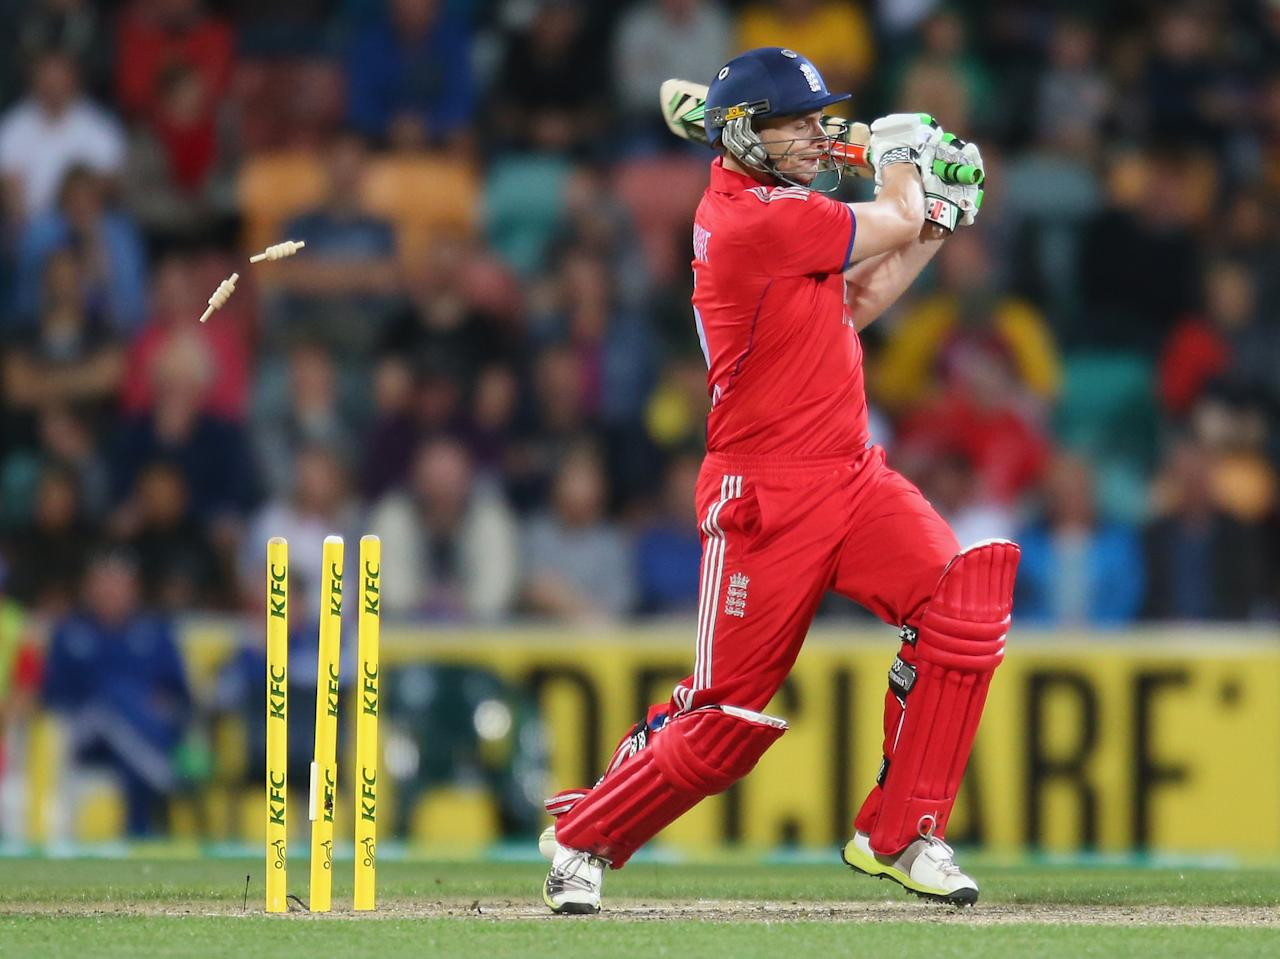 HOBART, AUSTRALIA - JANUARY 29:  Luke Wright of England is out bowled during game one of the International Twenty20 series between Australia and England at Blundstone Arena on January 29, 2014 in Hobart, Australia.  (Photo by Scott Barbour/Getty Images)